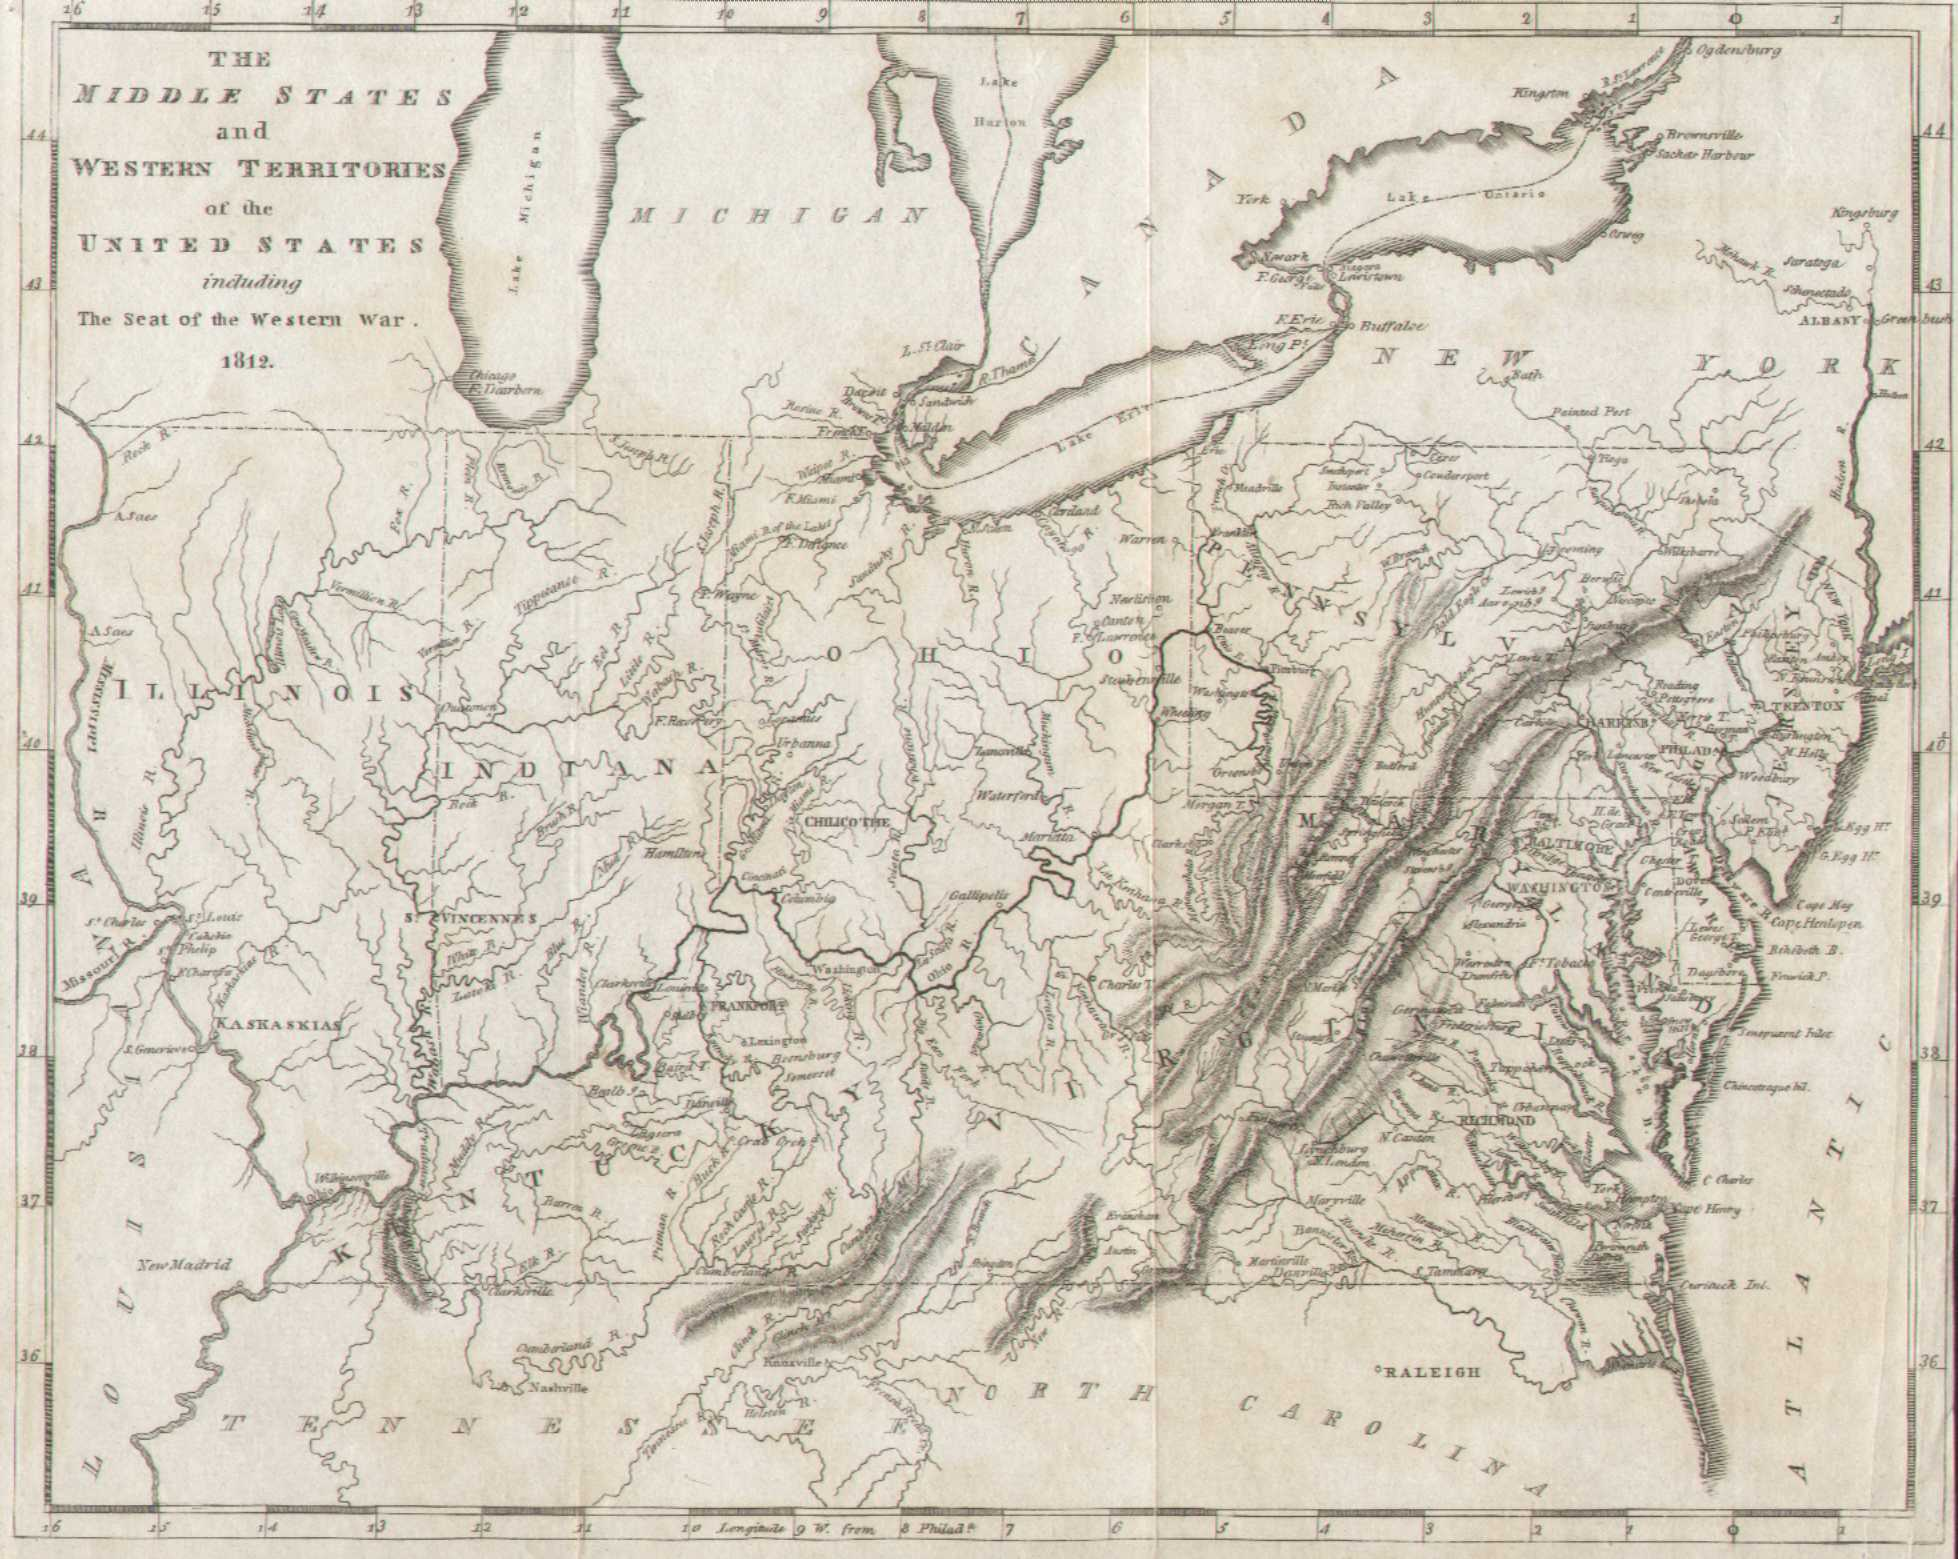 1812 2 The Middle States And Western Territories Of The United States Including The Seat Of The Western War 1812 Like The One Above This Map Is